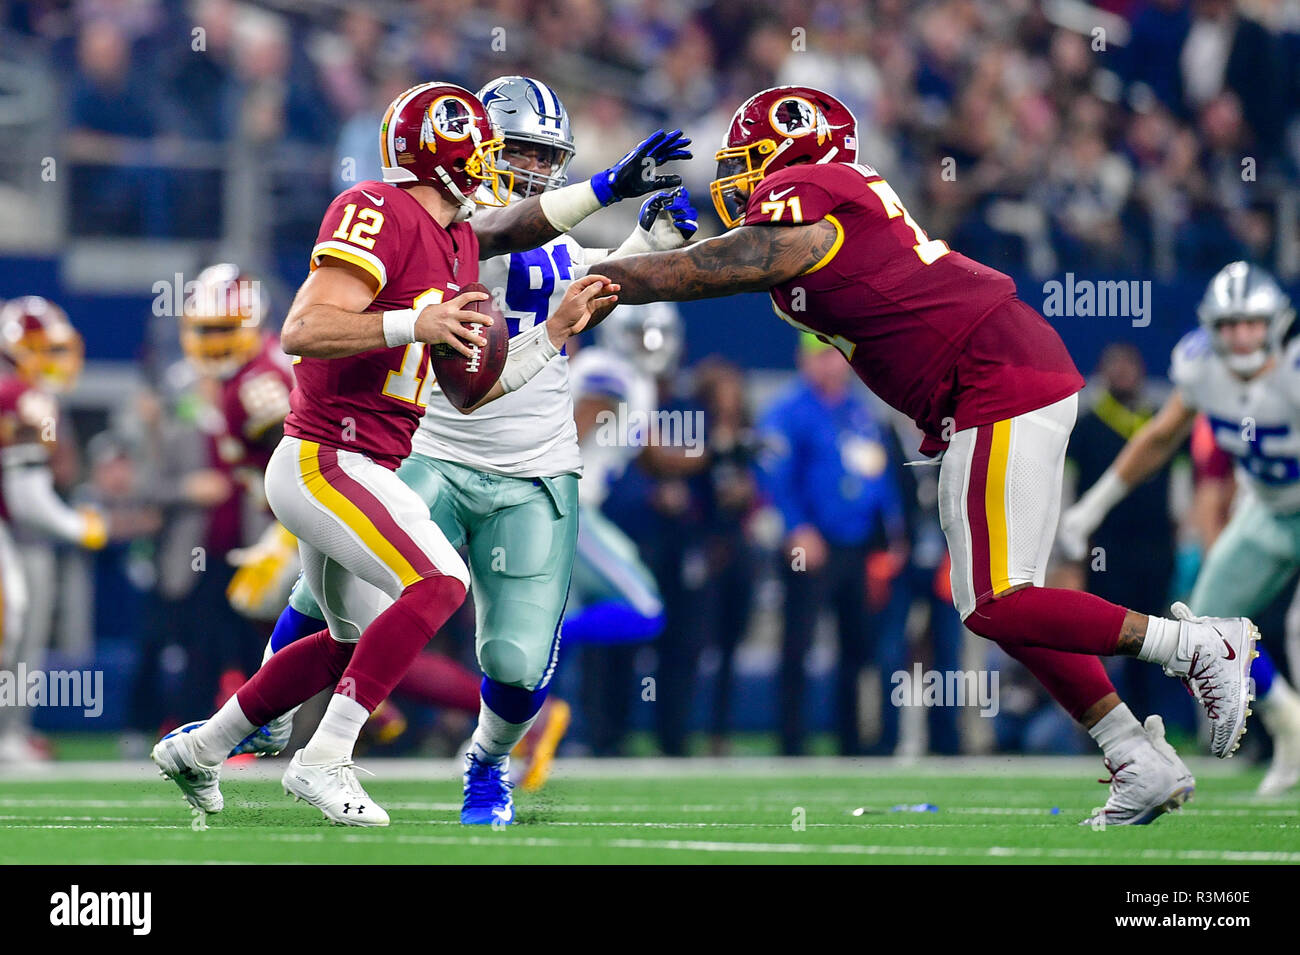 November 22, 2018:.Washington Redskins quarterback Colt McCoy (12) tries to get away from the line of scrimmages as Dallas Cowboys defensive tackle Daniel Ross (93) and Washington Redskins offensive tackle Trent Williams (71) battle.during an NFL football game between the Washington Redskins and Dallas Cowboys at AT&T Stadium in Arlington, Texas. .Manny Flores/CSM - Stock Image